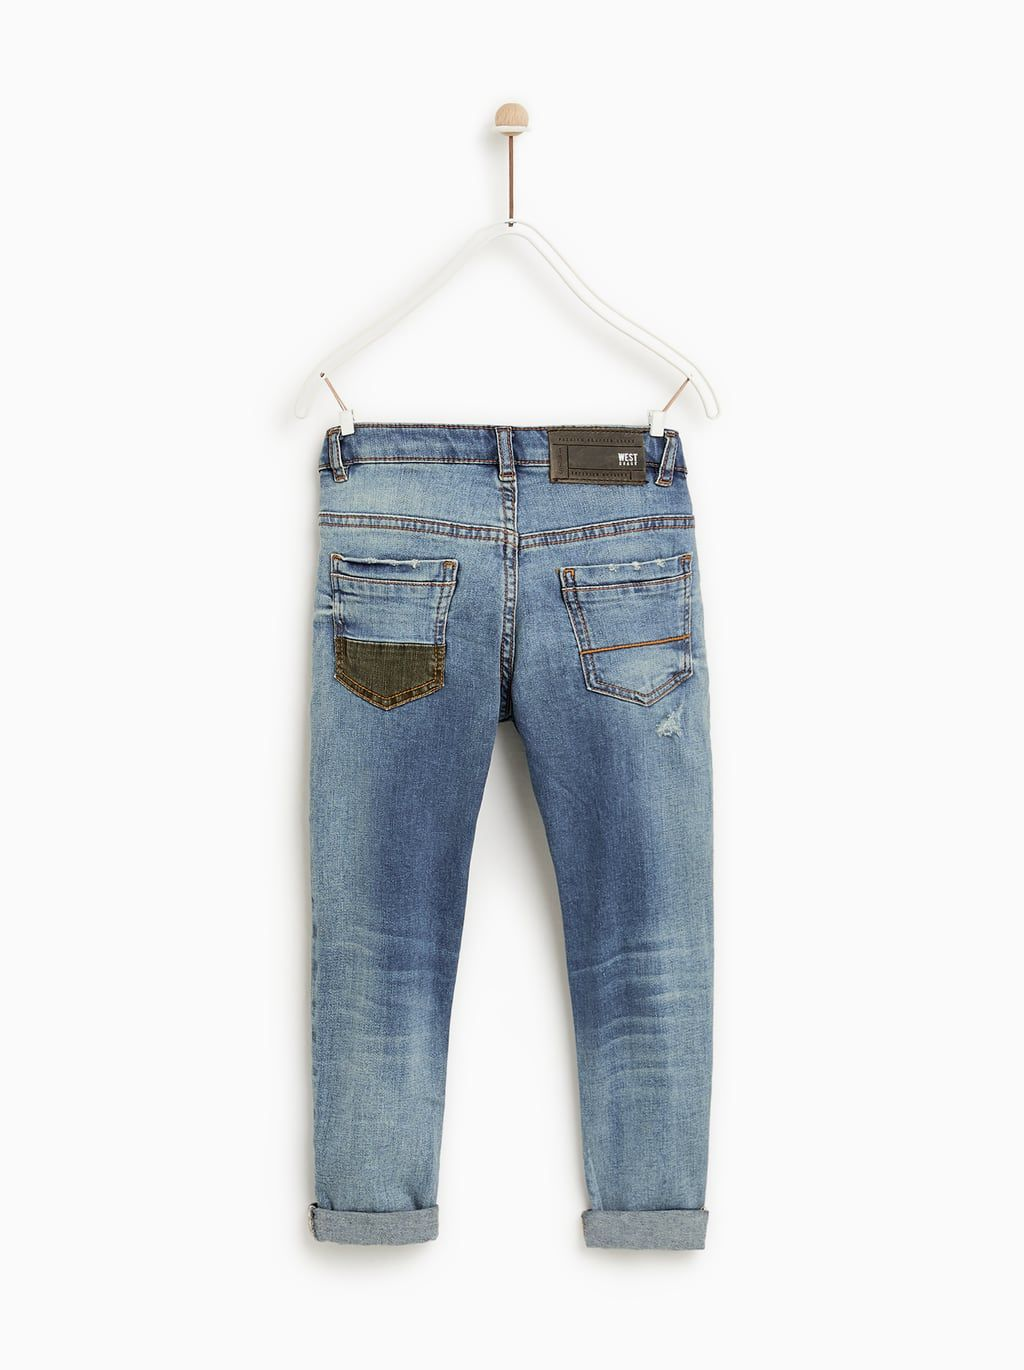 d3d38d51d Stylish distressed Denim/Ripped jeans for babies and toddlers! | Baby  Fashion | Toddler Style | Pinterest | Toddler fashion, Distressed denim and  Denim